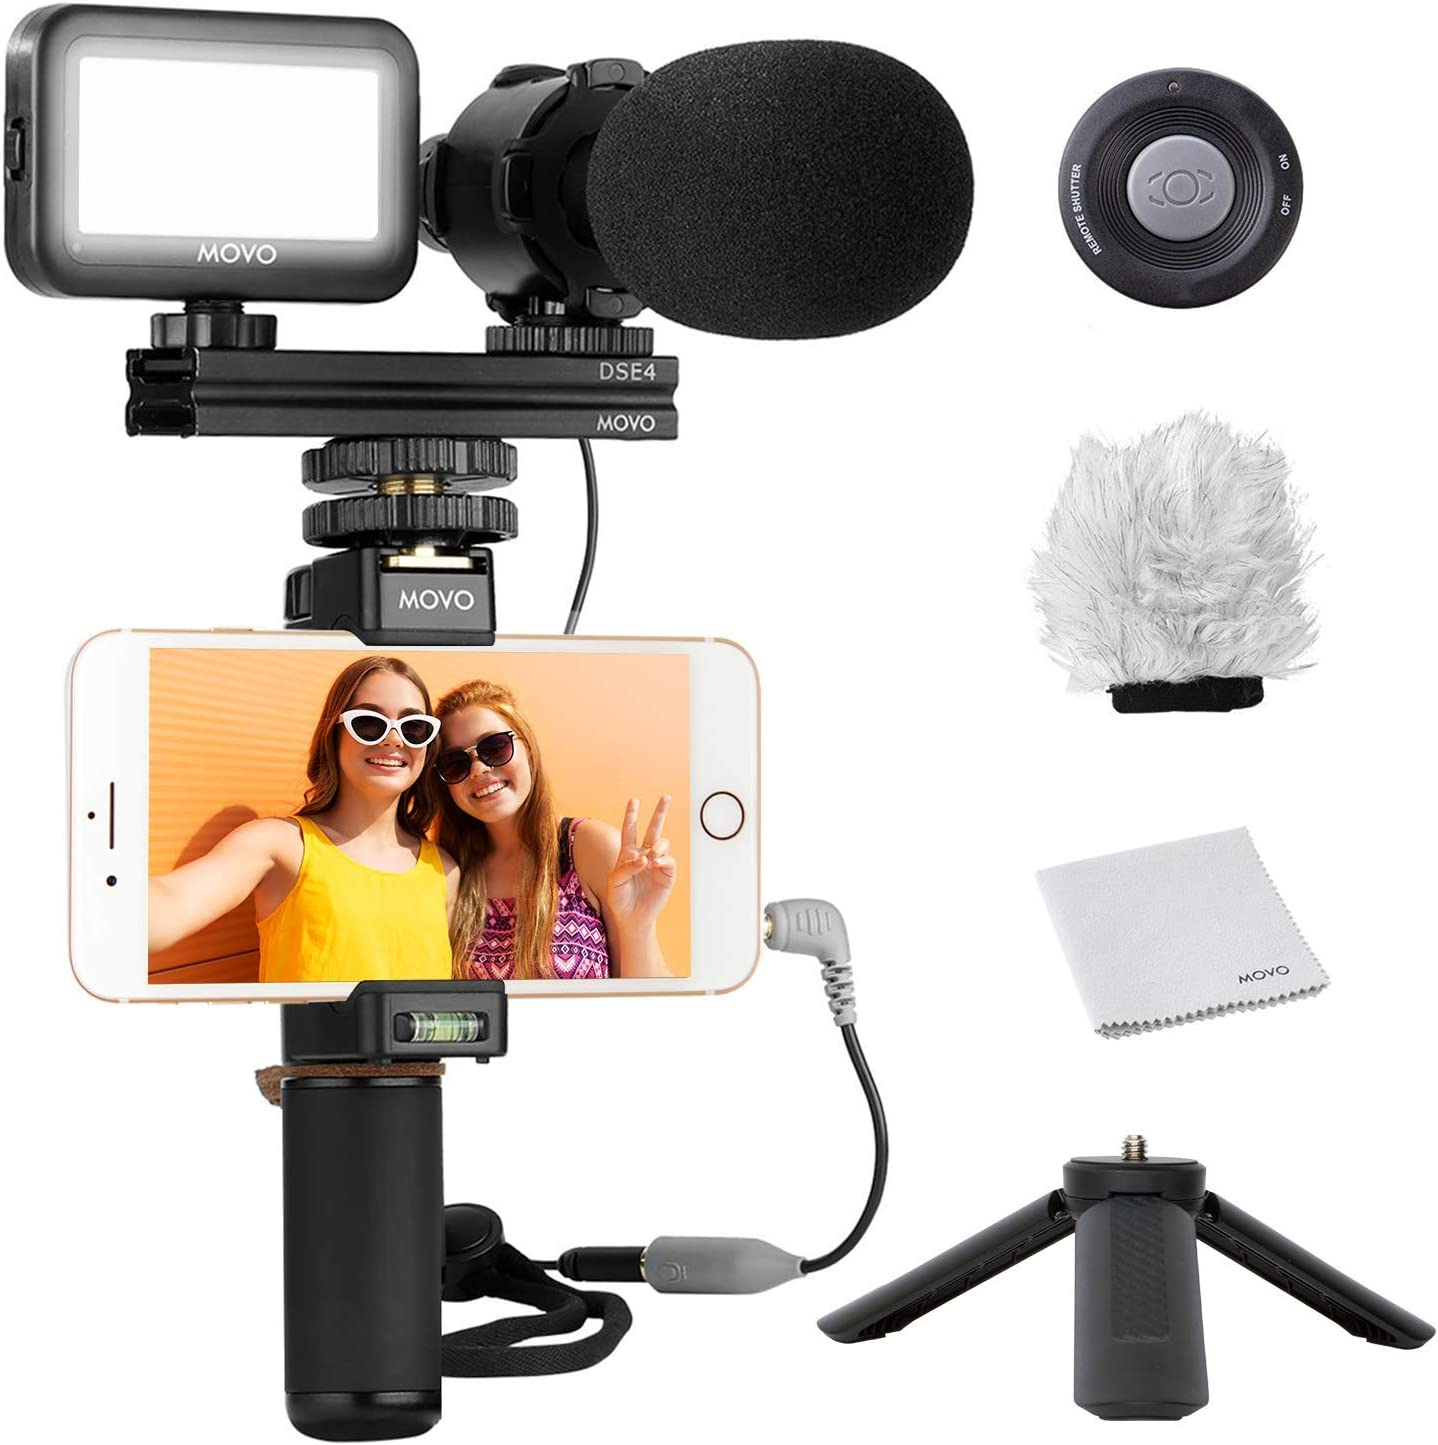 Movo Smartphone Video Kit V7 Vlogging Kit with Tripod Stereo Microphone Note Android Samsung Galaxy YouTube Equipment Compatible with iPhone Grip Rig LED Light and Wireless Remote